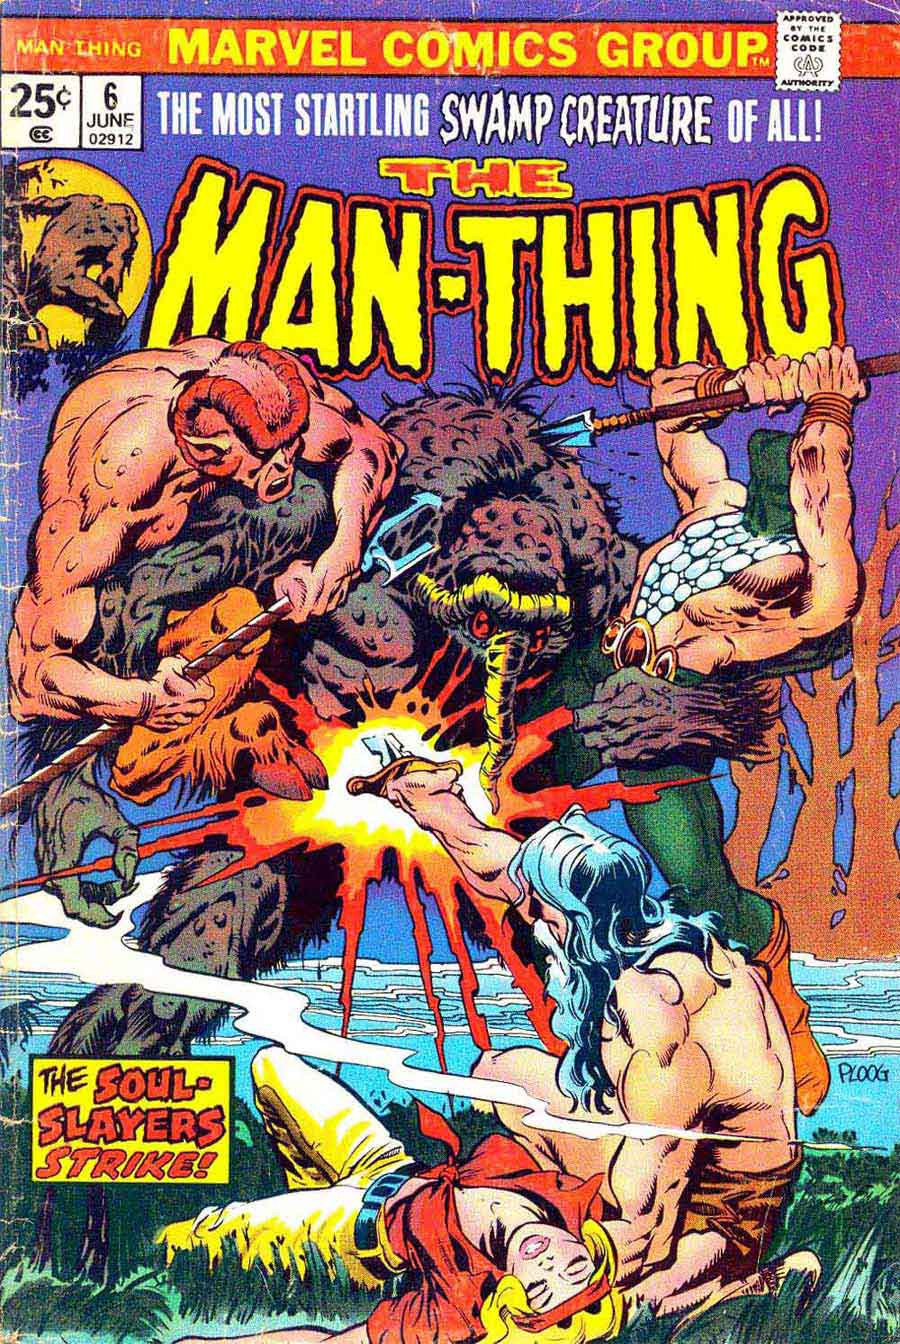 Man-Thing v1 #6 marvel 1970s bronze age comic book cover art by Mike Ploog